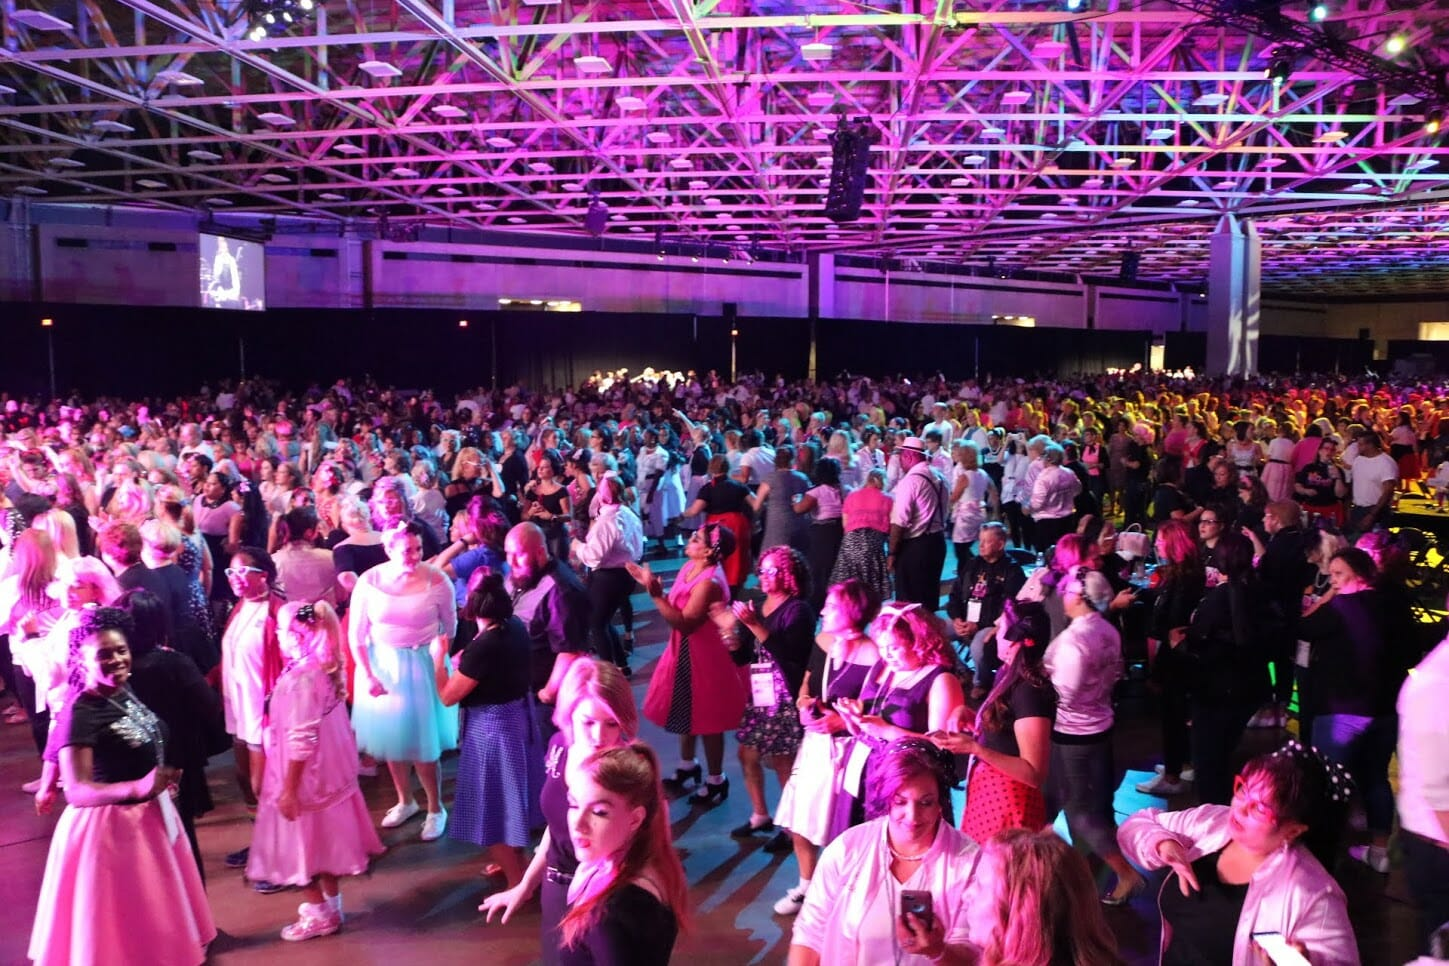 zenith lighting orlando event lighting company for corporate events